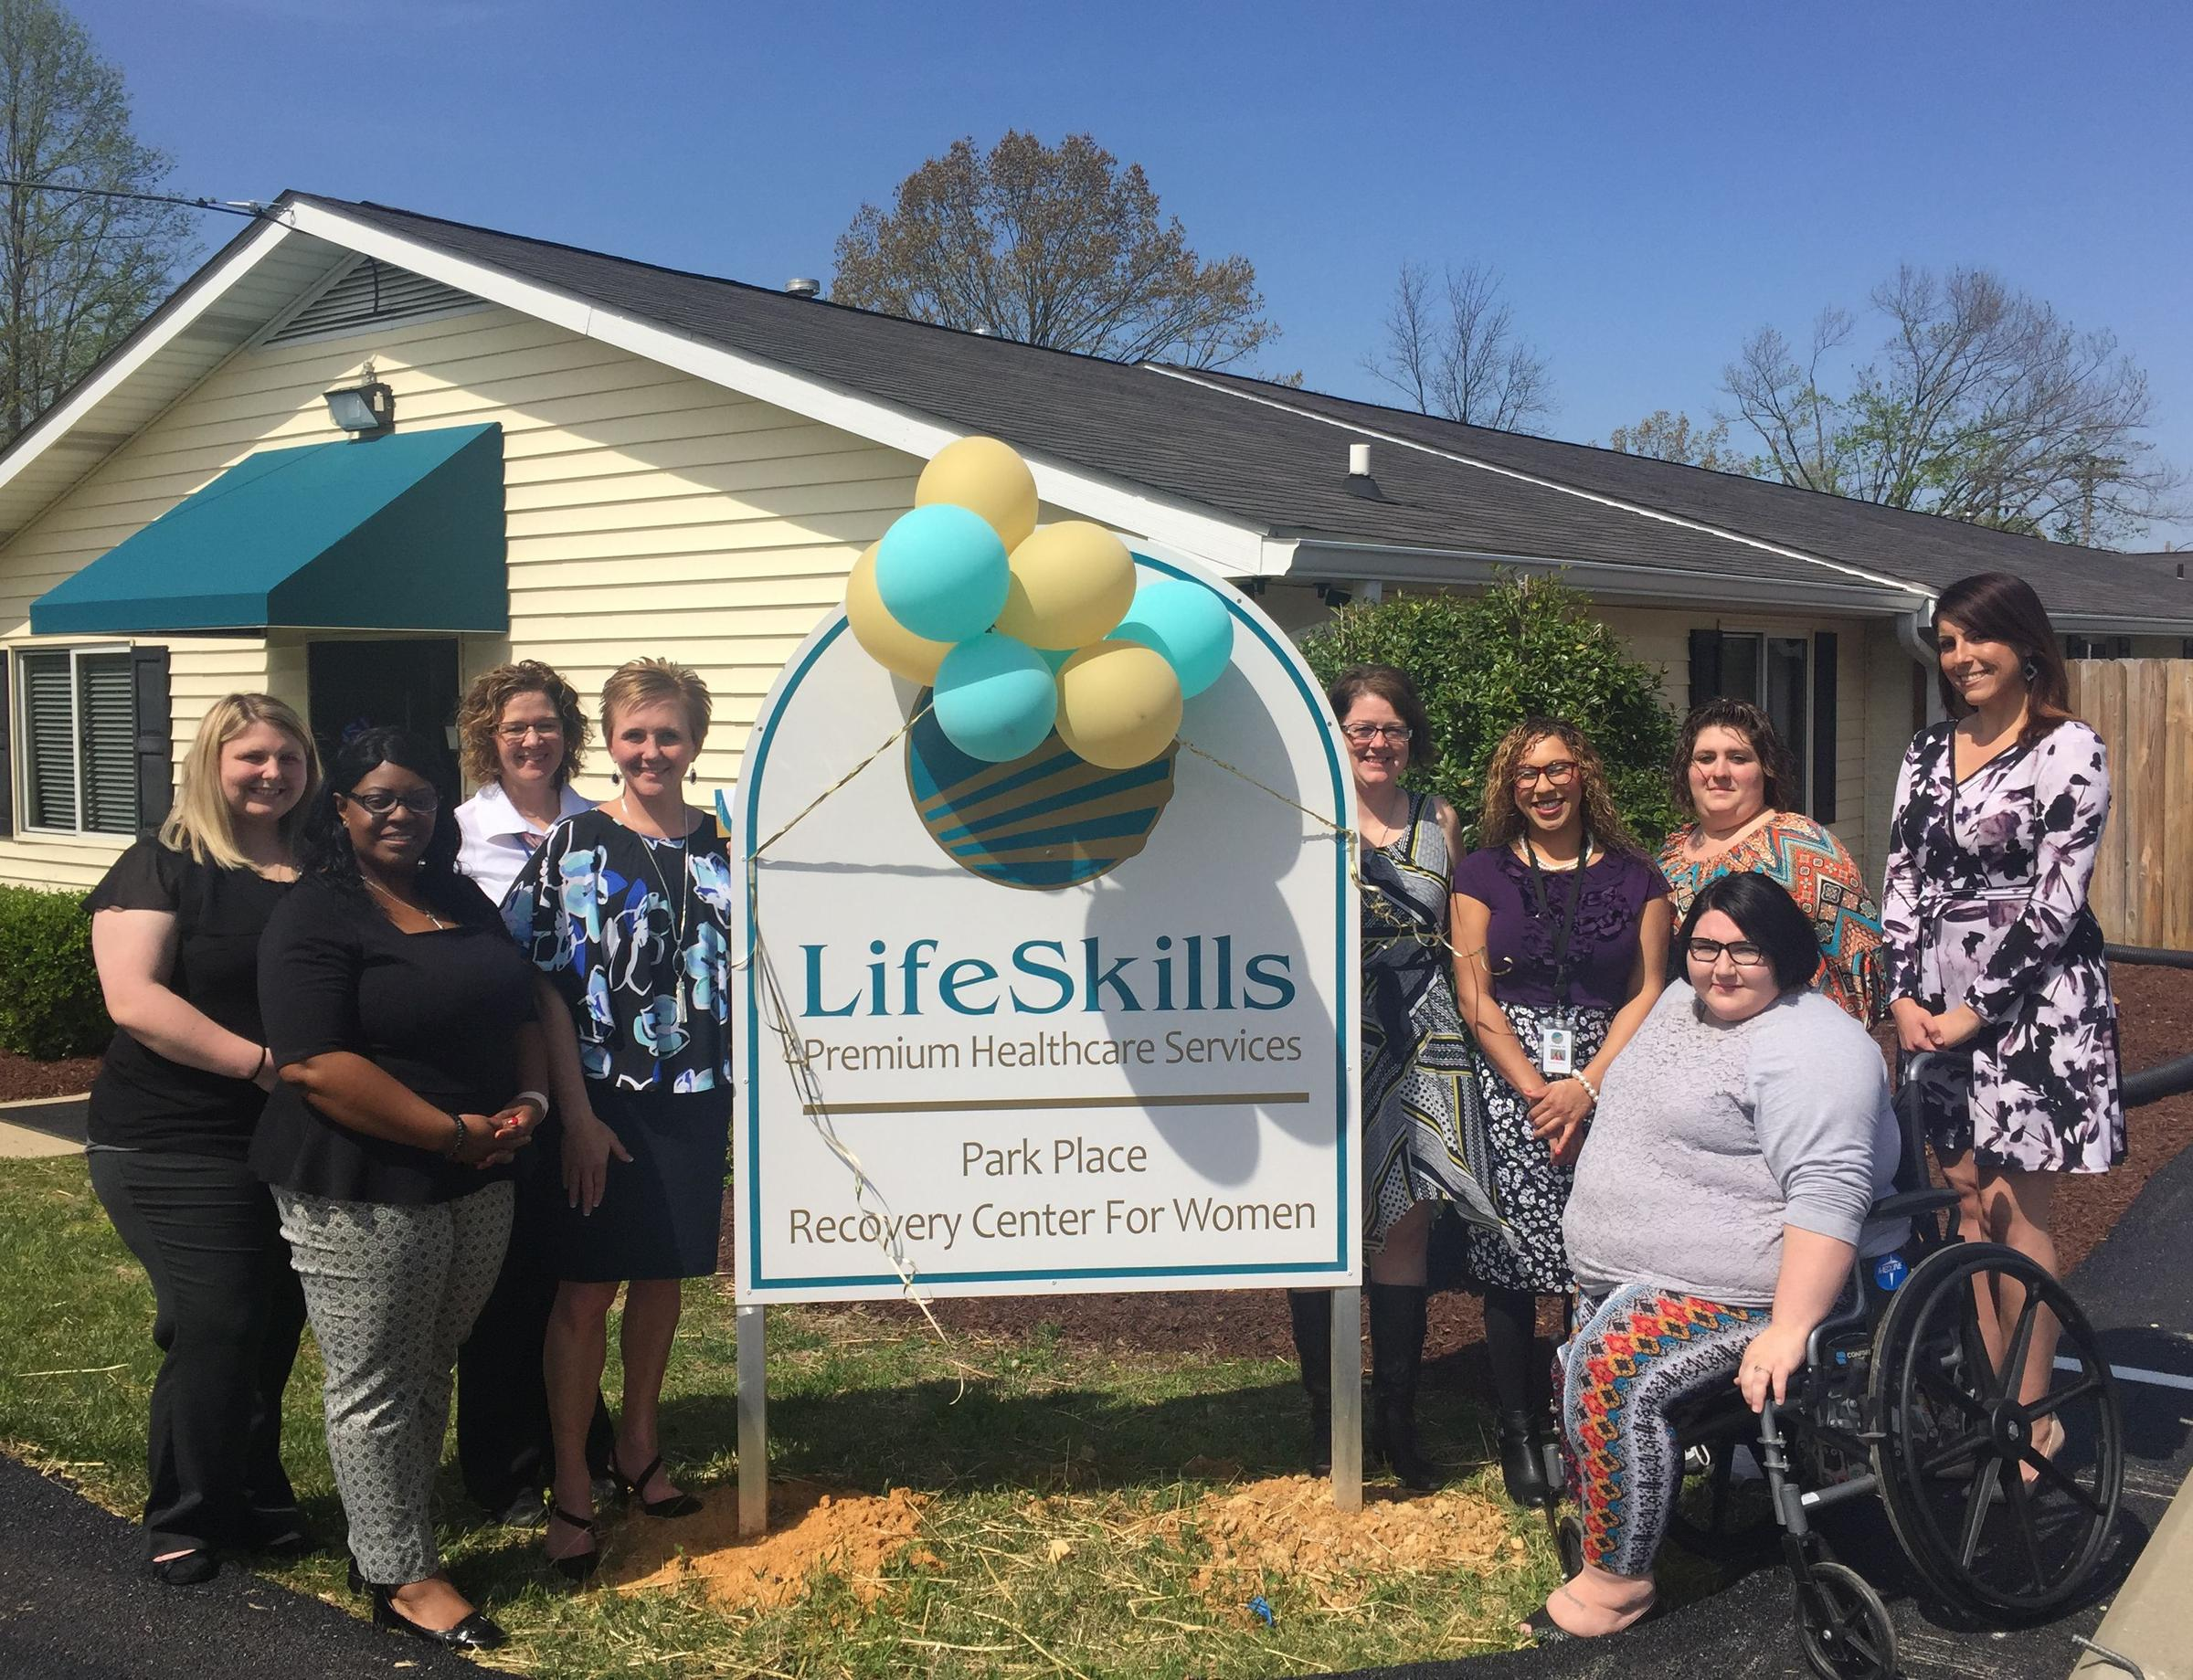 lifeskills opening scottsville recovery center for women with